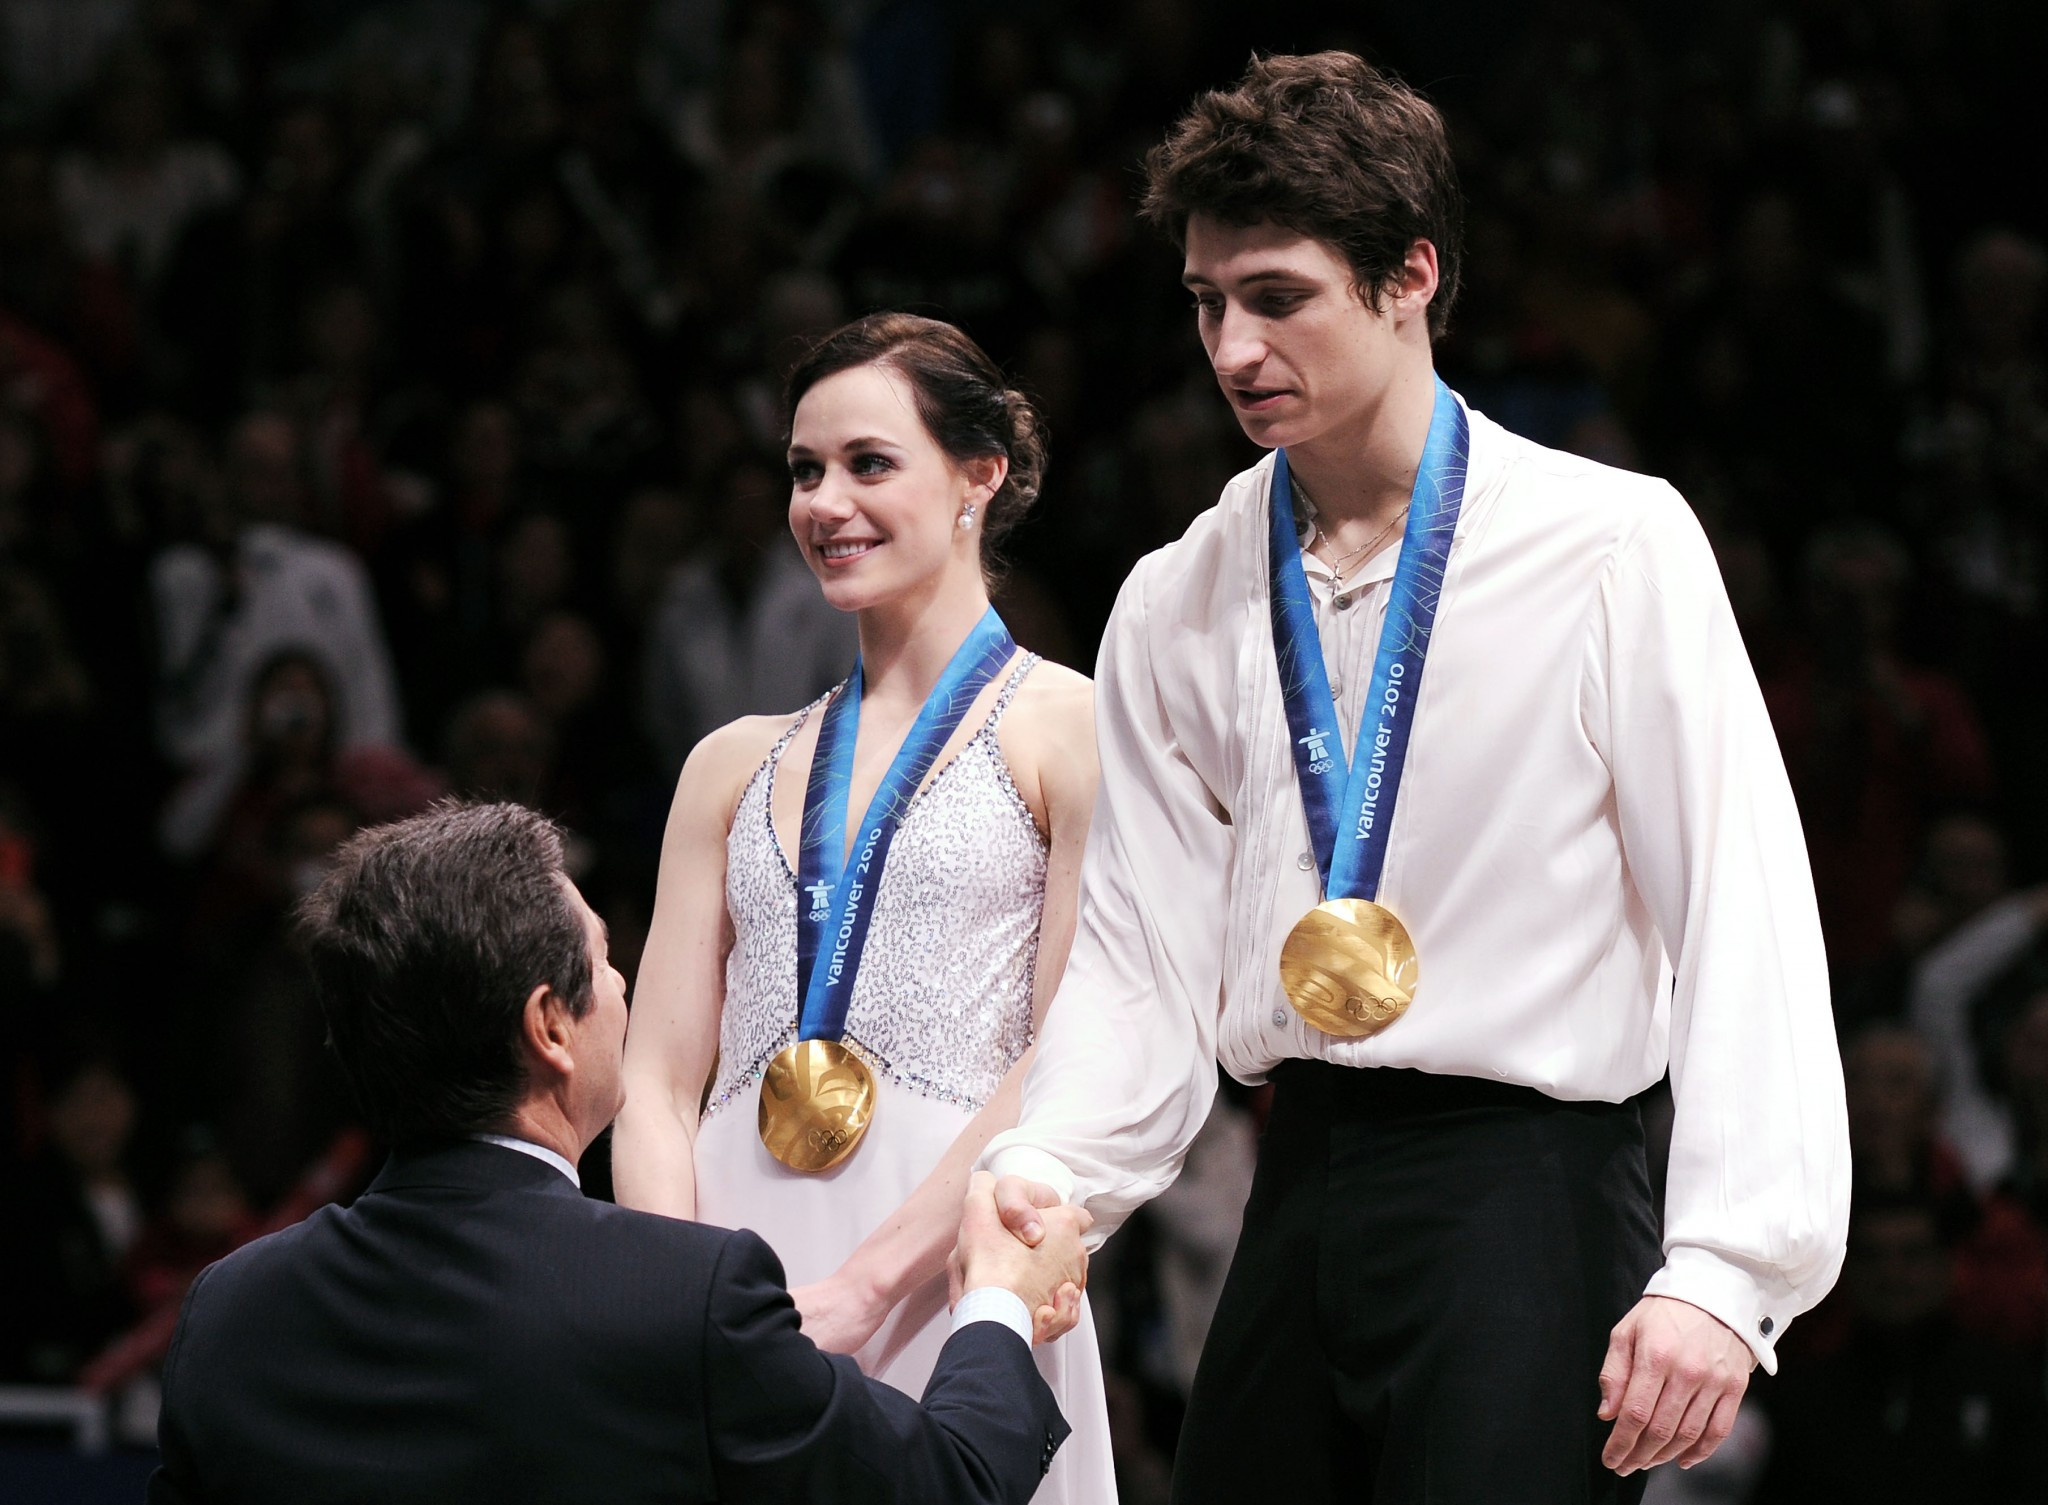 Tessa Virtue and Scott Moir won the ice dance event at their home Winter Olympic Games in Vancouver in 2010 ©Getty Images